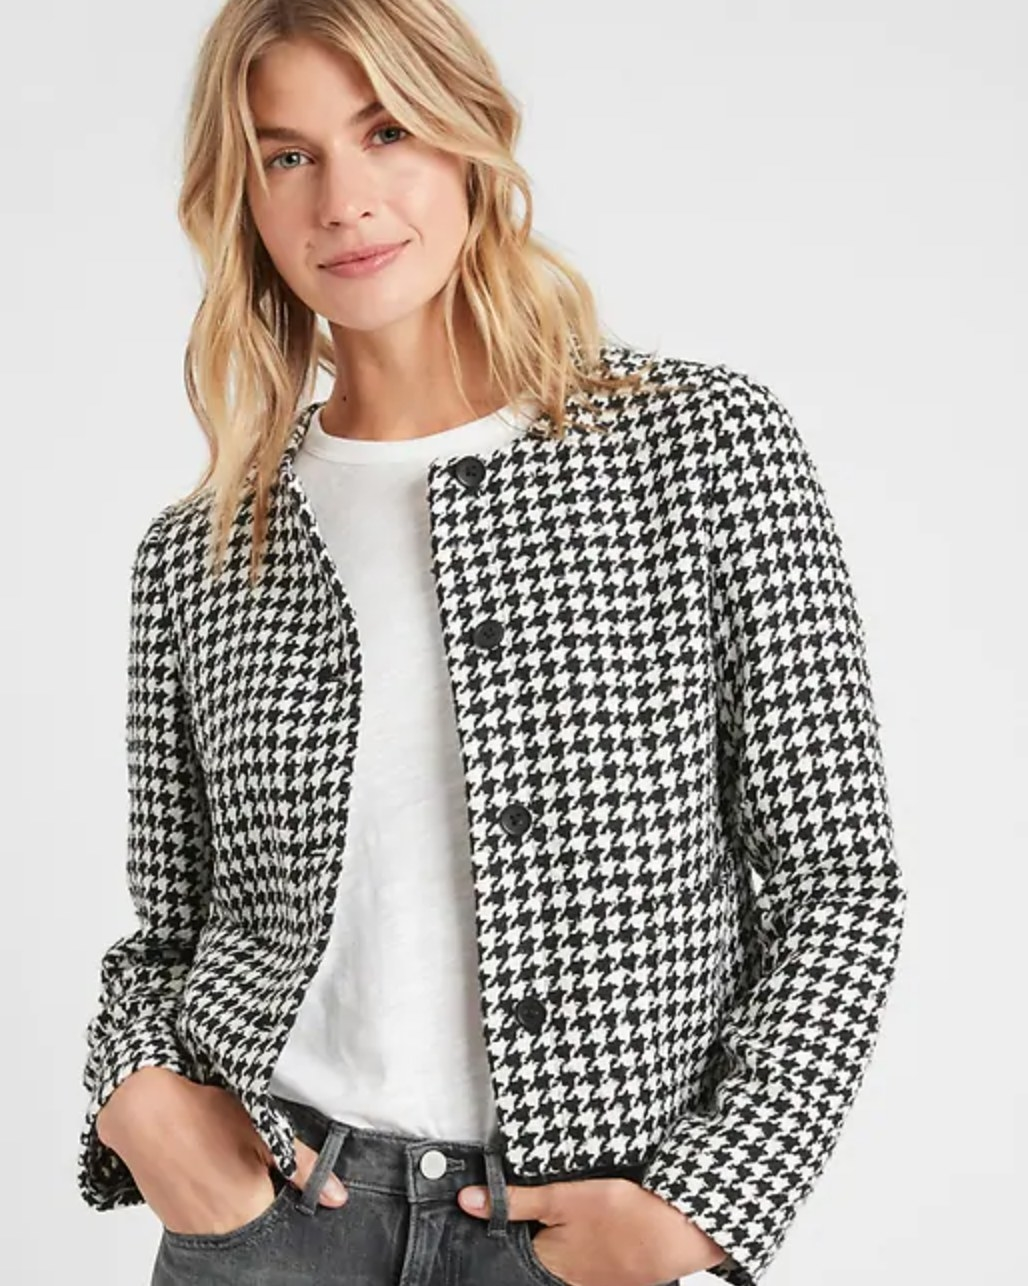 The houndstooth jacket in black/white